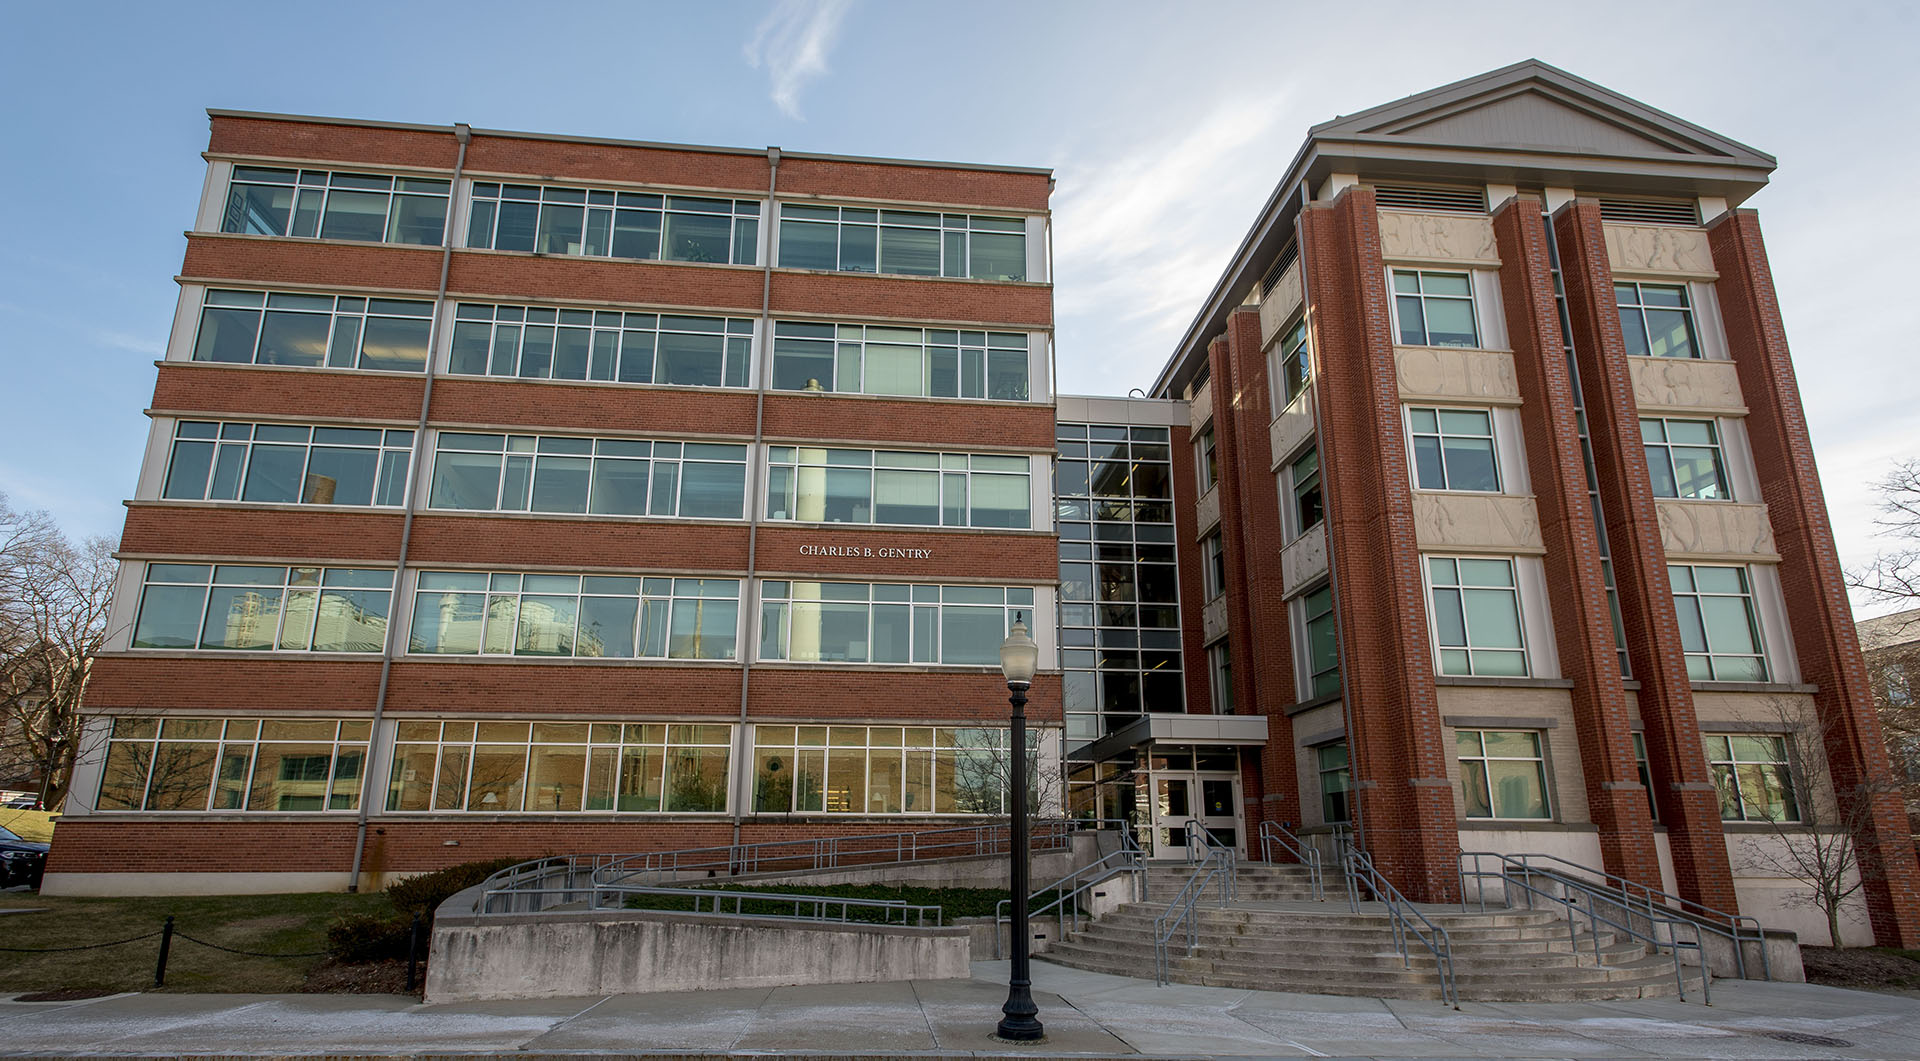 Charles B. Gentry Building. Home to the Collaborative on Postsecondary Education and Disability.